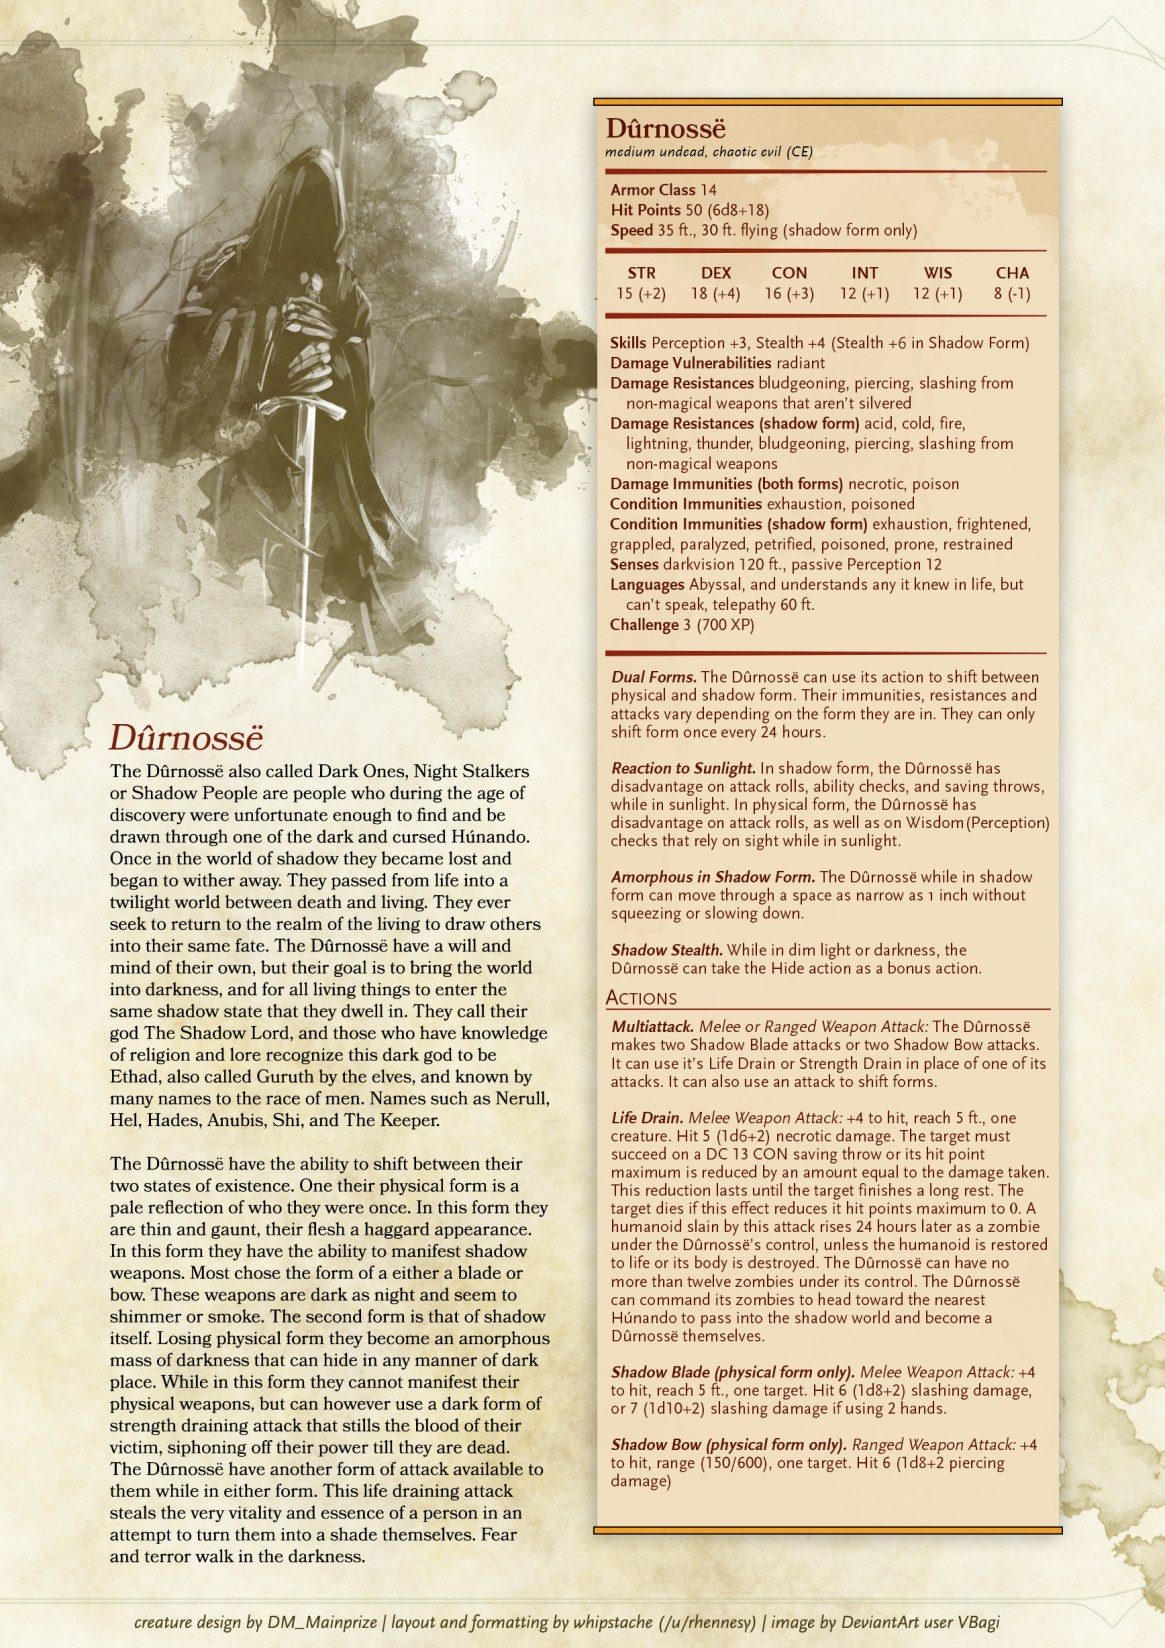 Durnosse DM Mainprize Homebrew.fixed